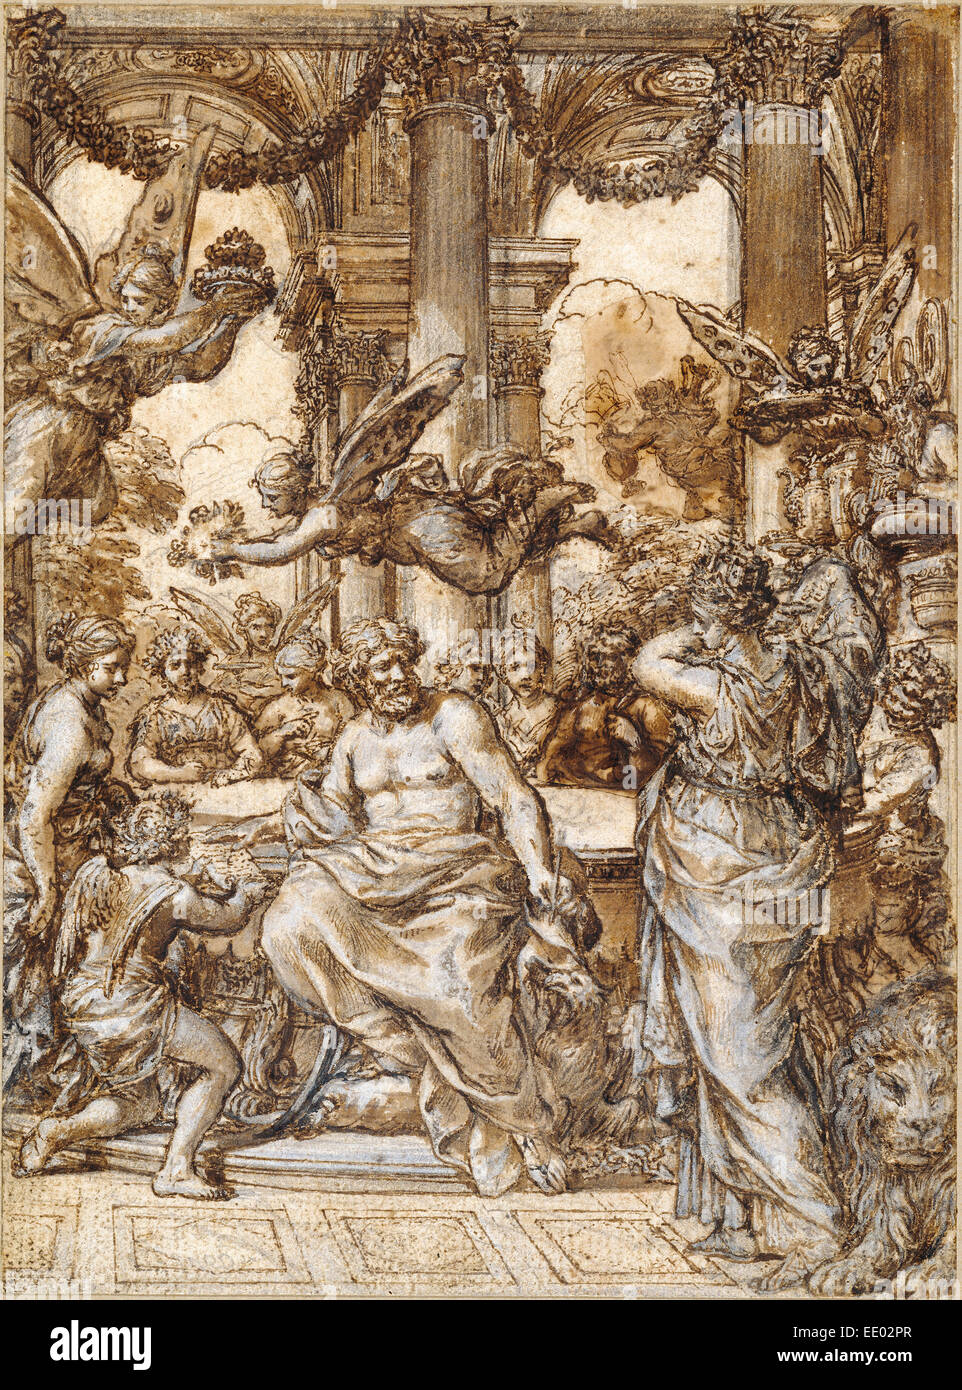 Cybele before the Council of the Gods; Pietro da Cortona, Italian, 1596 - 1669; Italy, Europe; 1633; Pen and brown - Stock Image